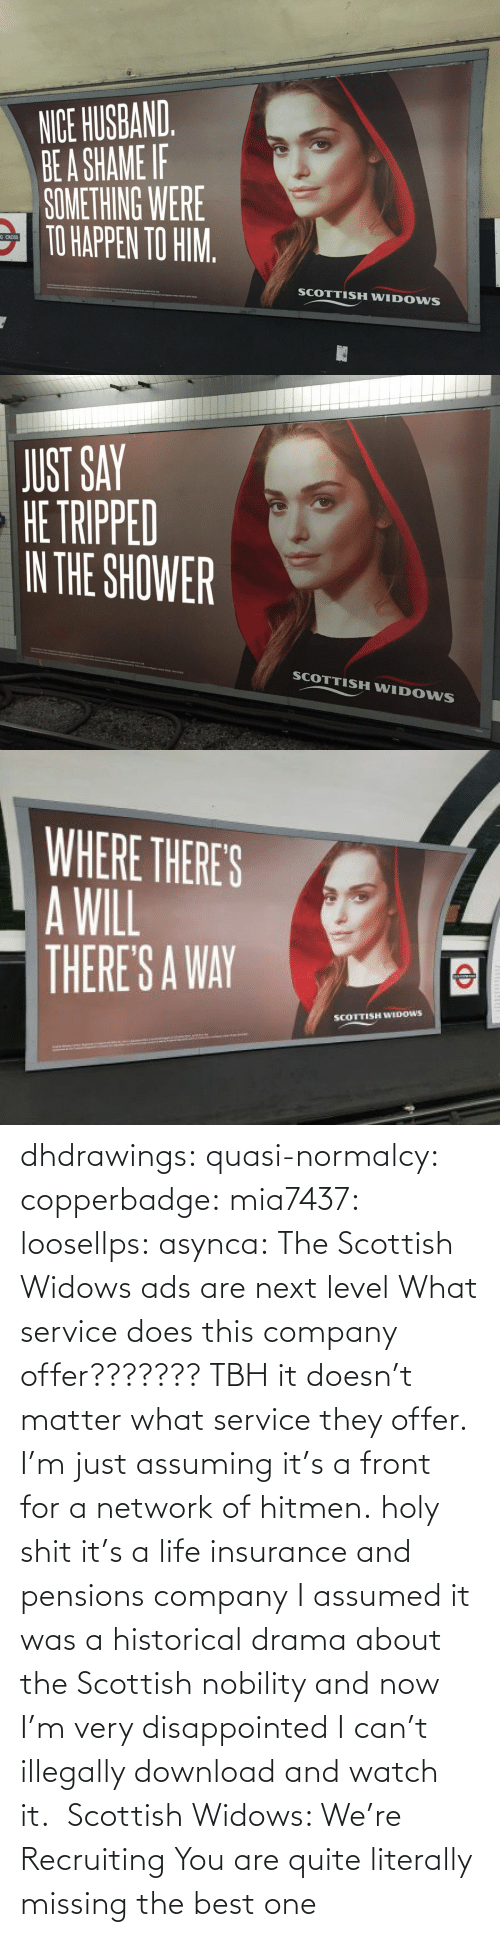 Historical: dhdrawings:  quasi-normalcy:  copperbadge:  mia7437:  loosellps:  asynca: The Scottish Widows ads are next level What service does this company offer??????? TBH it doesn't matter what service they offer. I'm just assuming it's a front for a network of hitmen.  holy shit it's a life insurance and pensions company  I assumed it was a historical drama about the Scottish nobility and now I'm very disappointed I can't illegally download and watch it.     Scottish Widows: We're Recruiting    You are quite literally missing the best one